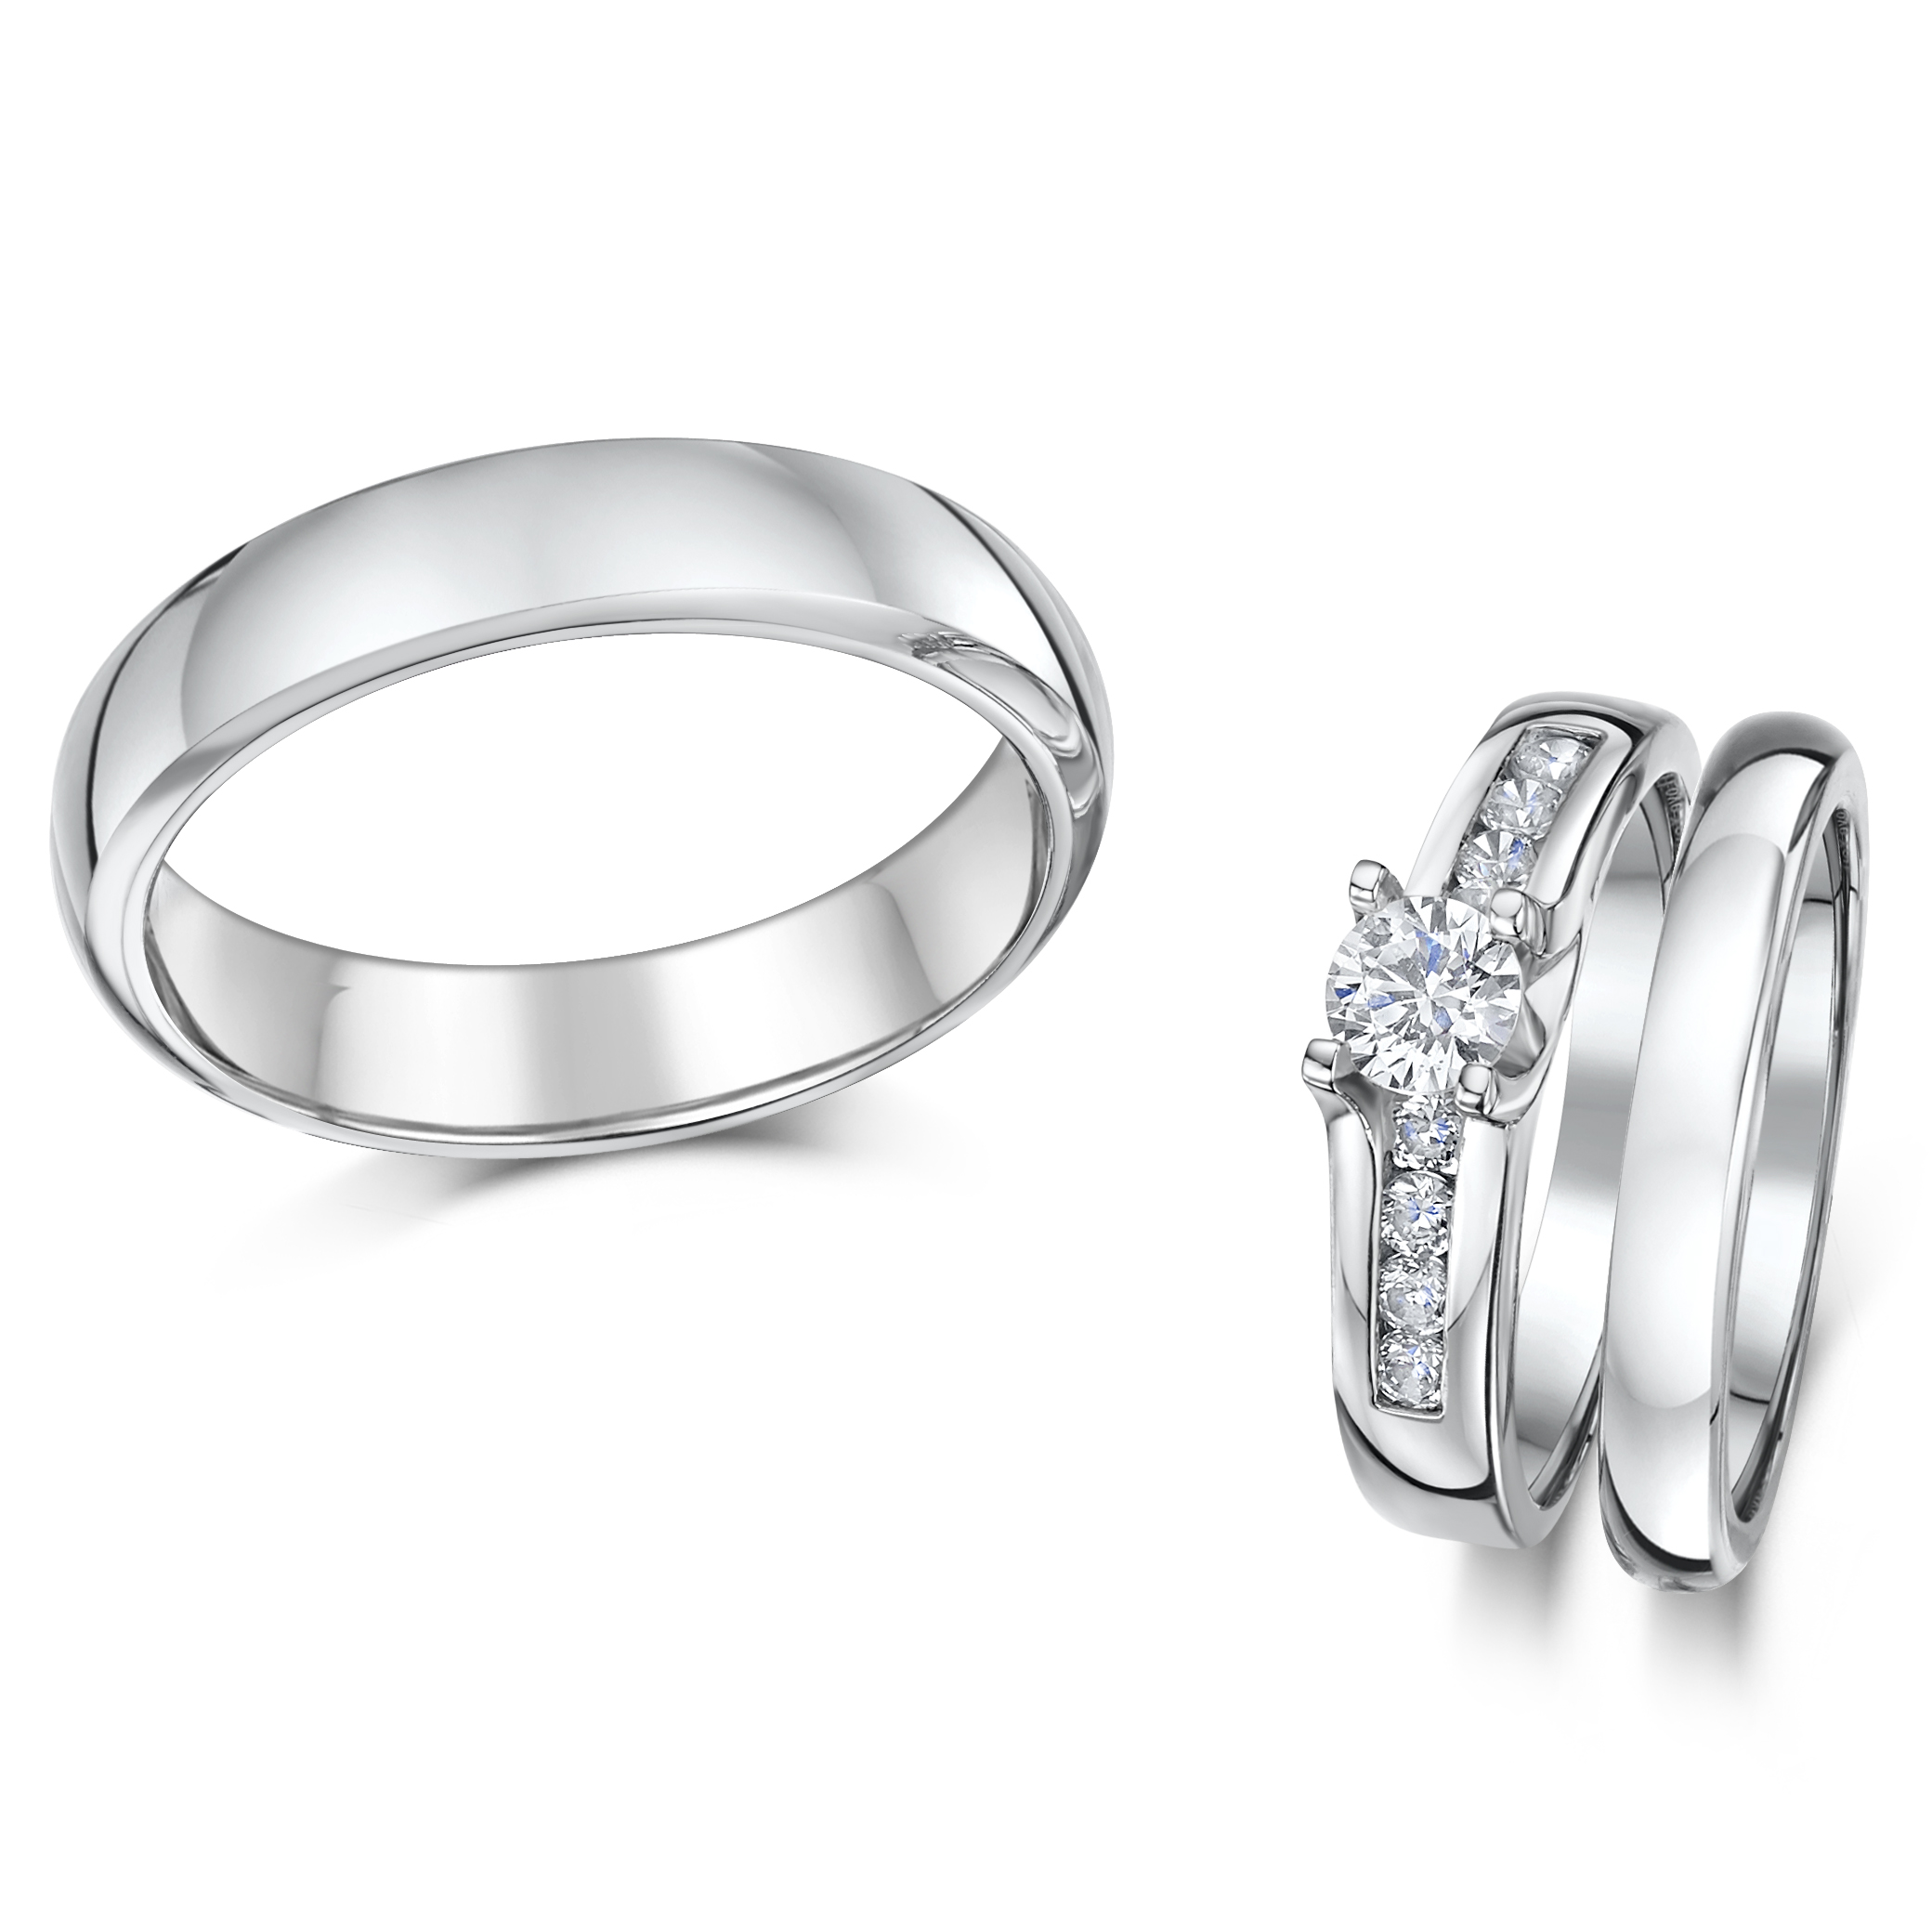 cobalt solitaire engagement his hers 35mm wedding rings - Cobalt Wedding Rings